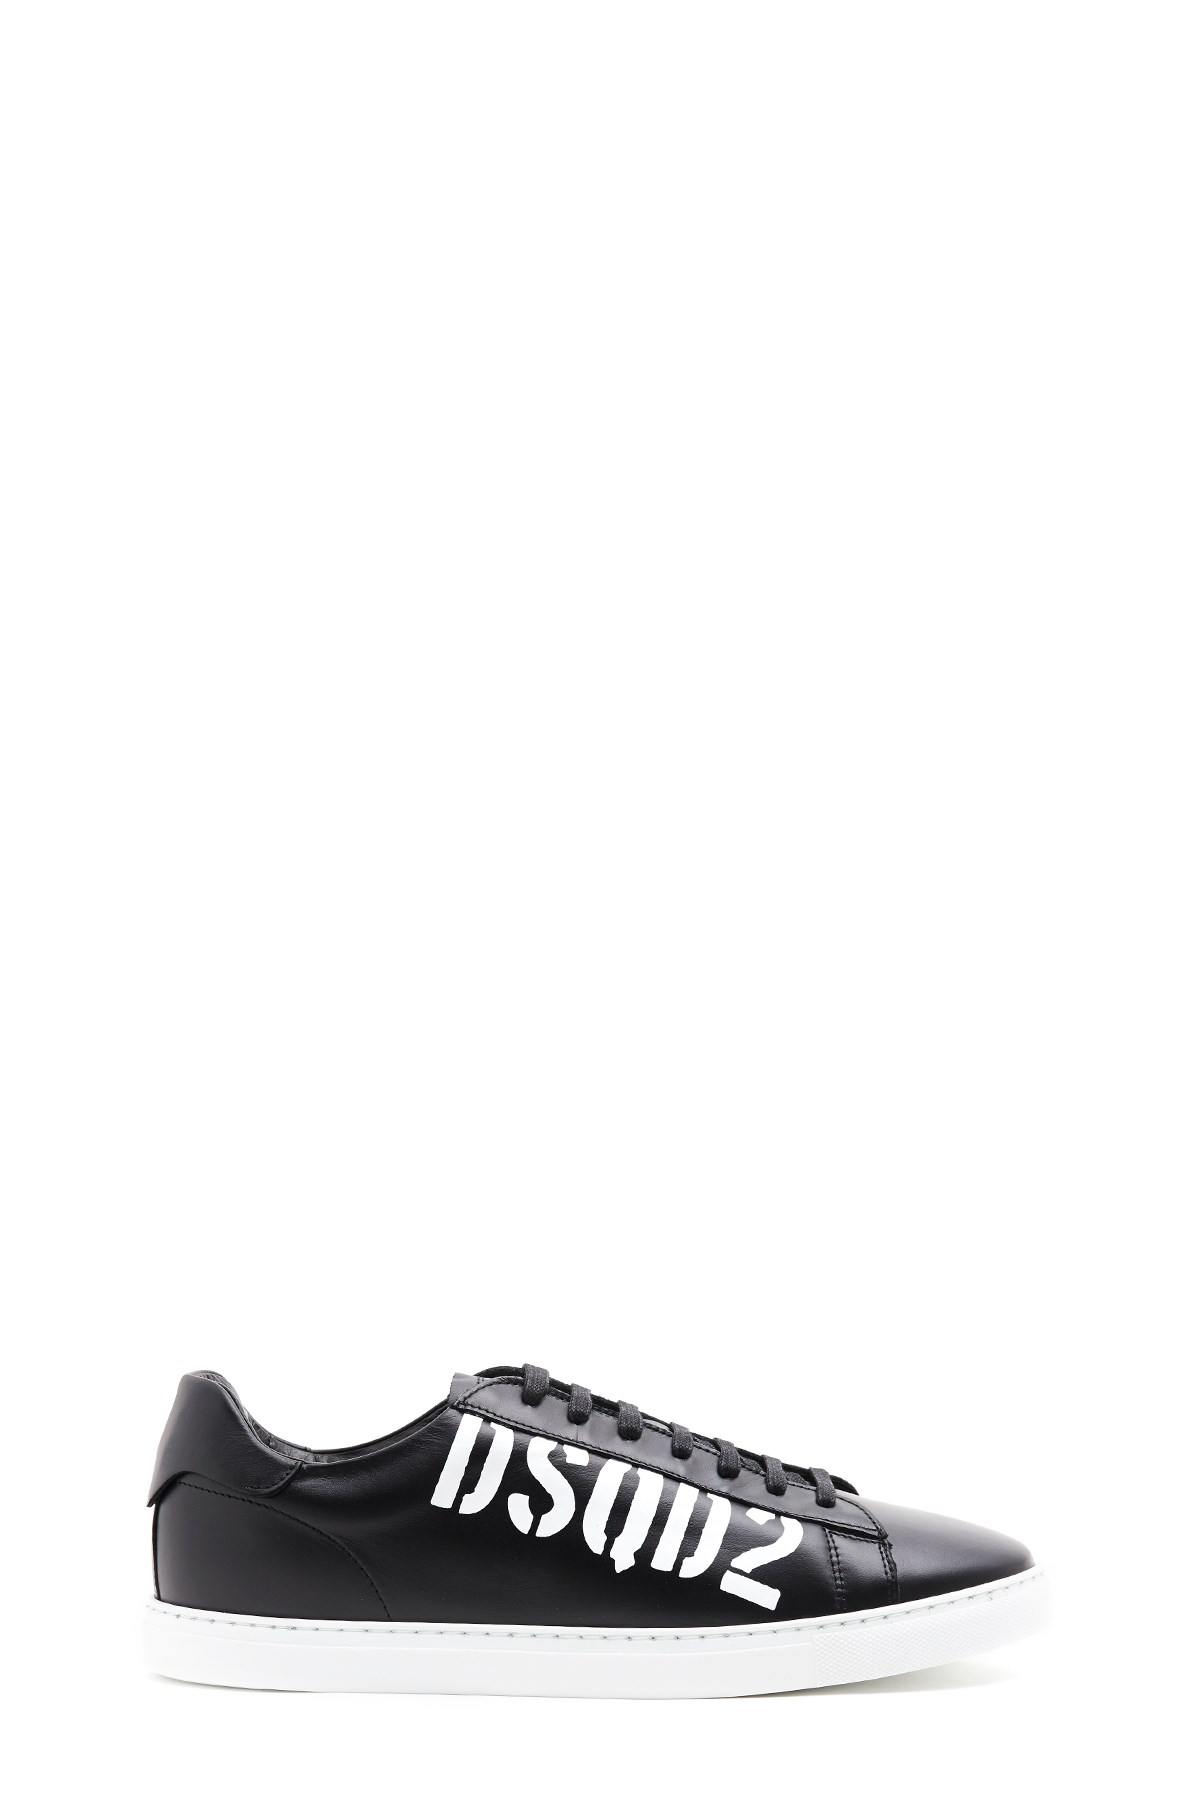 dsquared2  New tennis  sneakers available on julian-fashion.com - 61300 095b4e21575